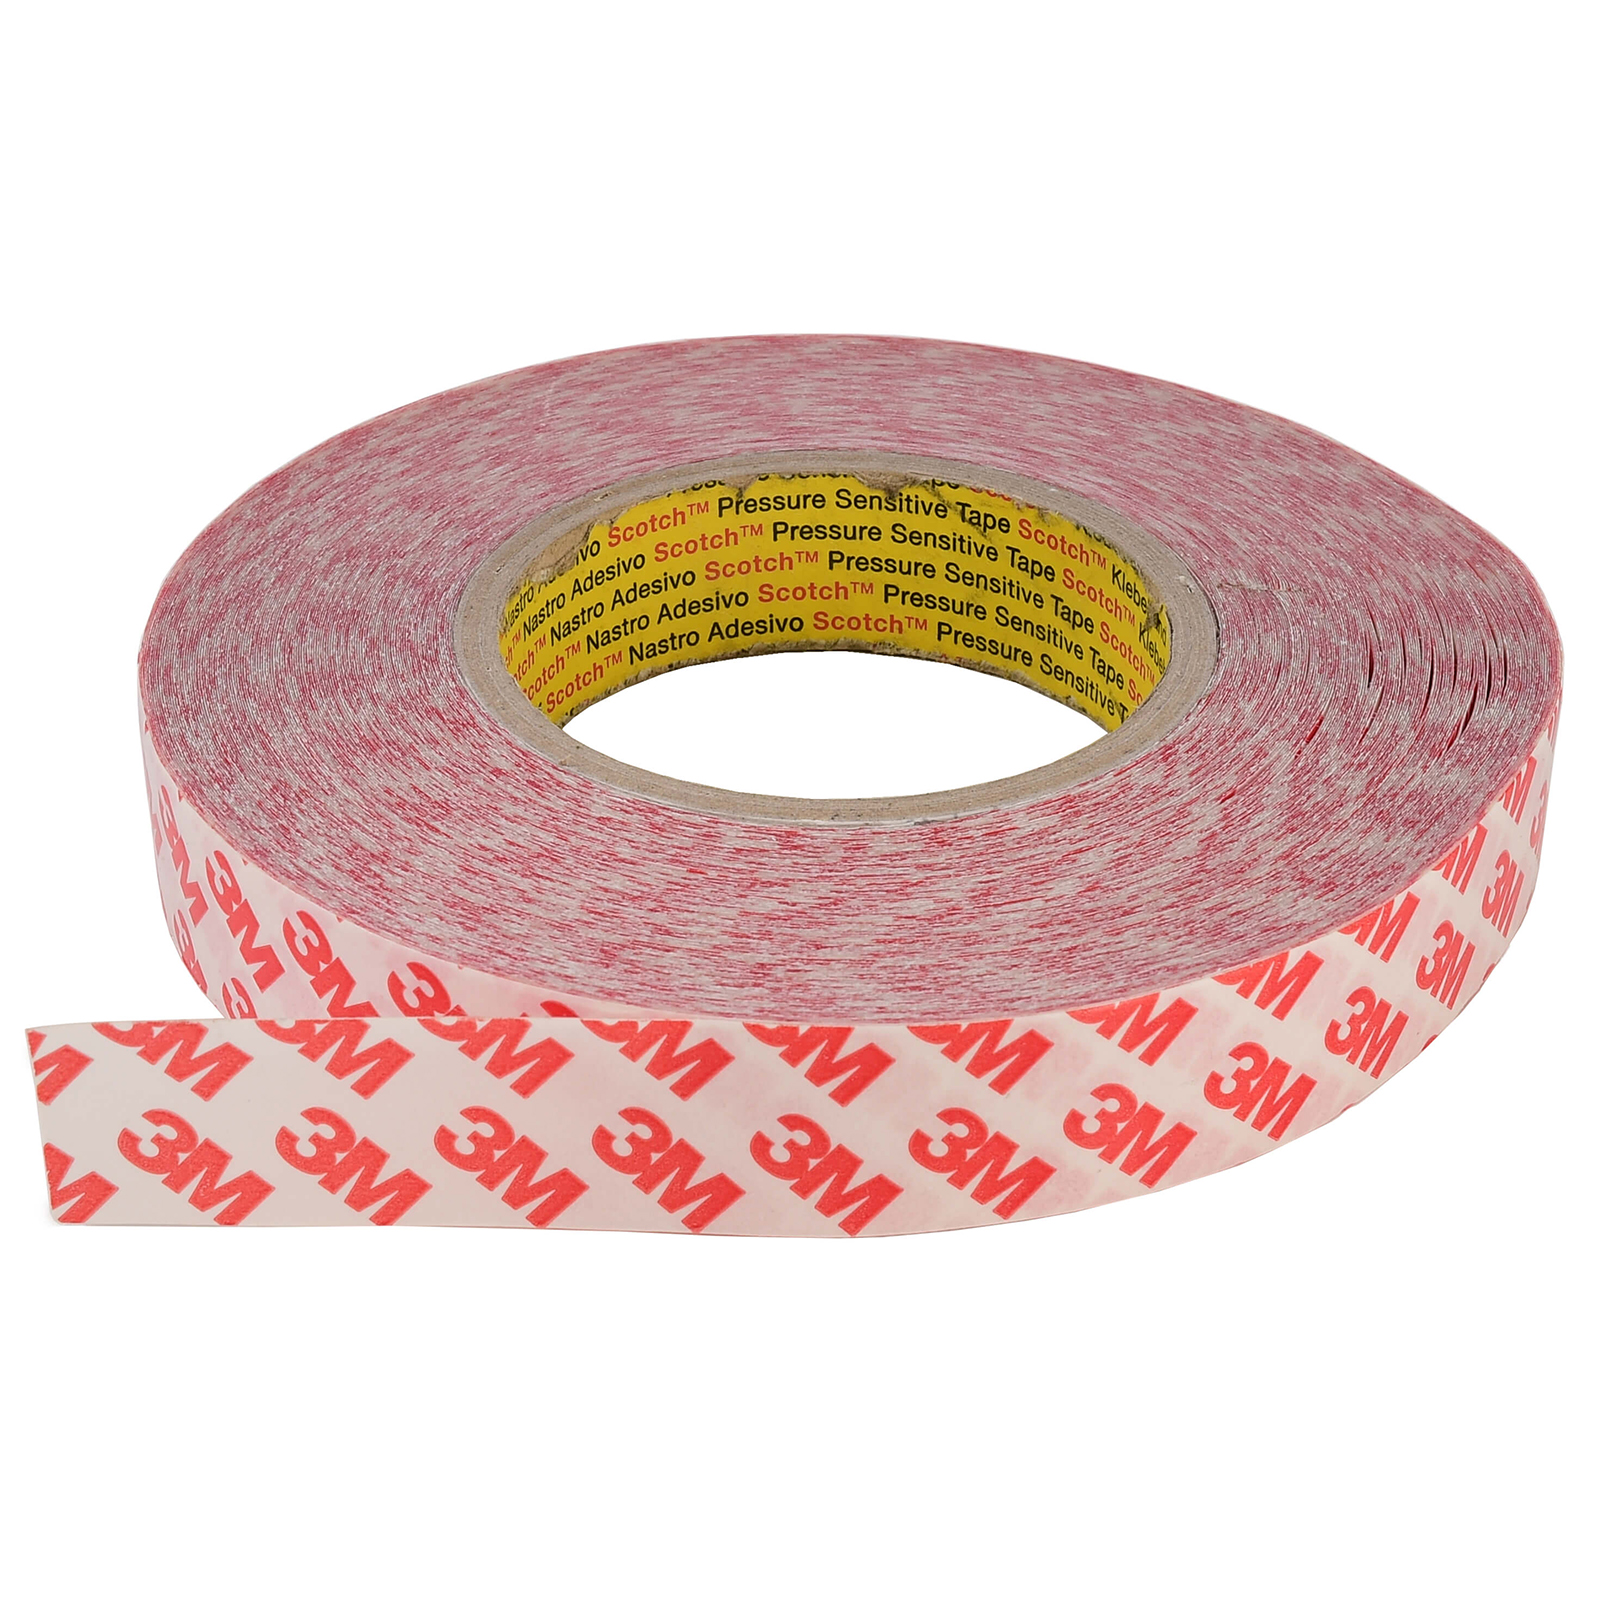 Adhesive 3M double-sided adhesive strips, LED profiles and tape 50 metres of ultra-tough 25mm